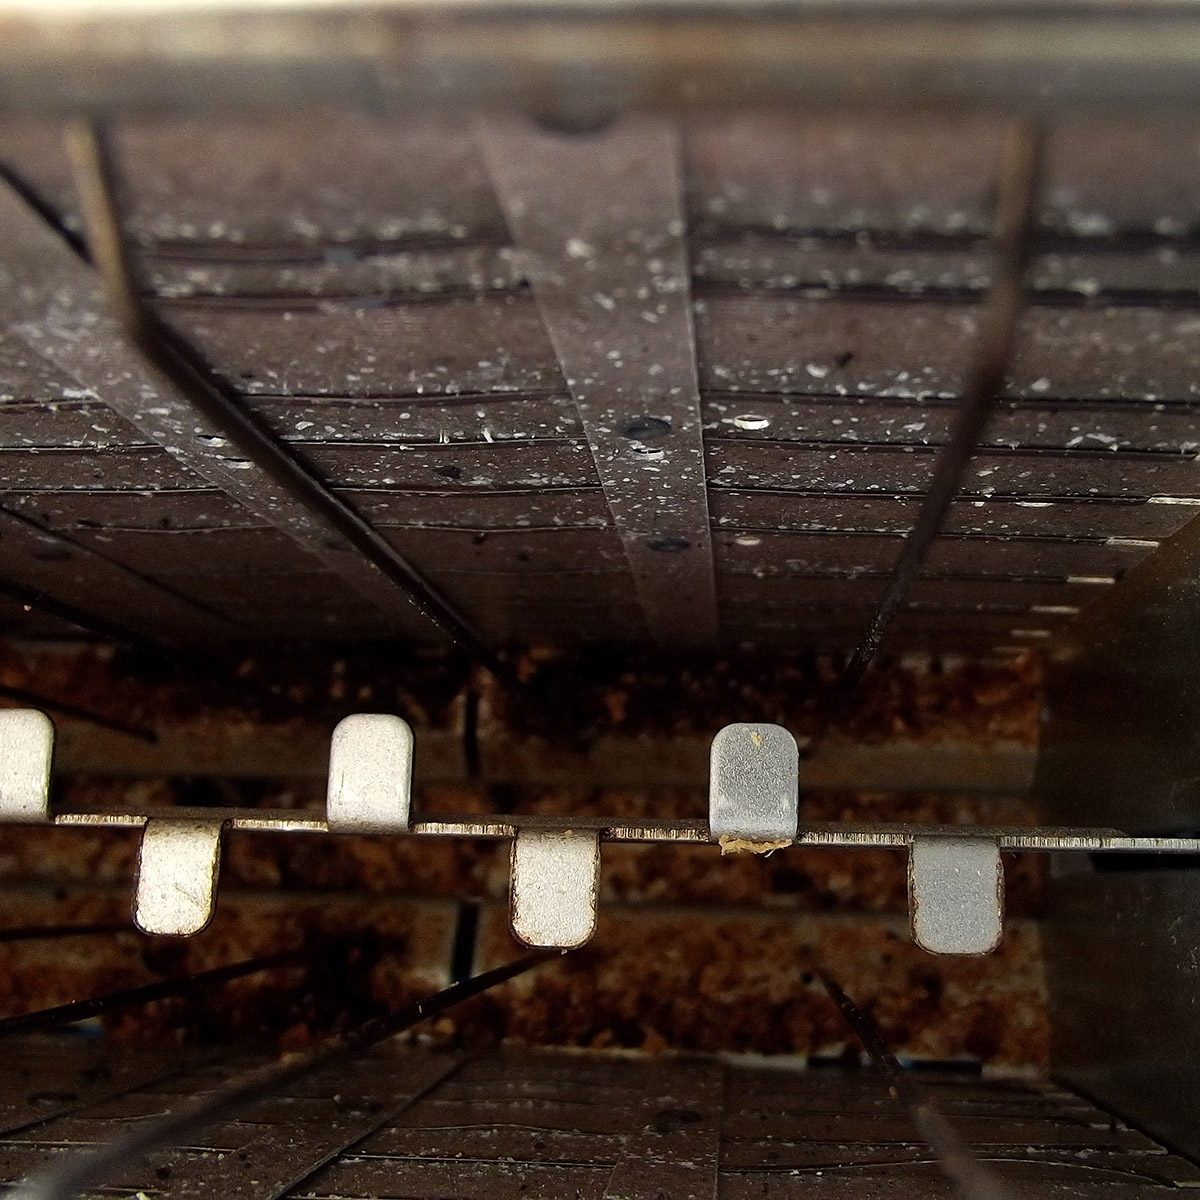 Close up of the inside of a used toaster with grill and crumbs.